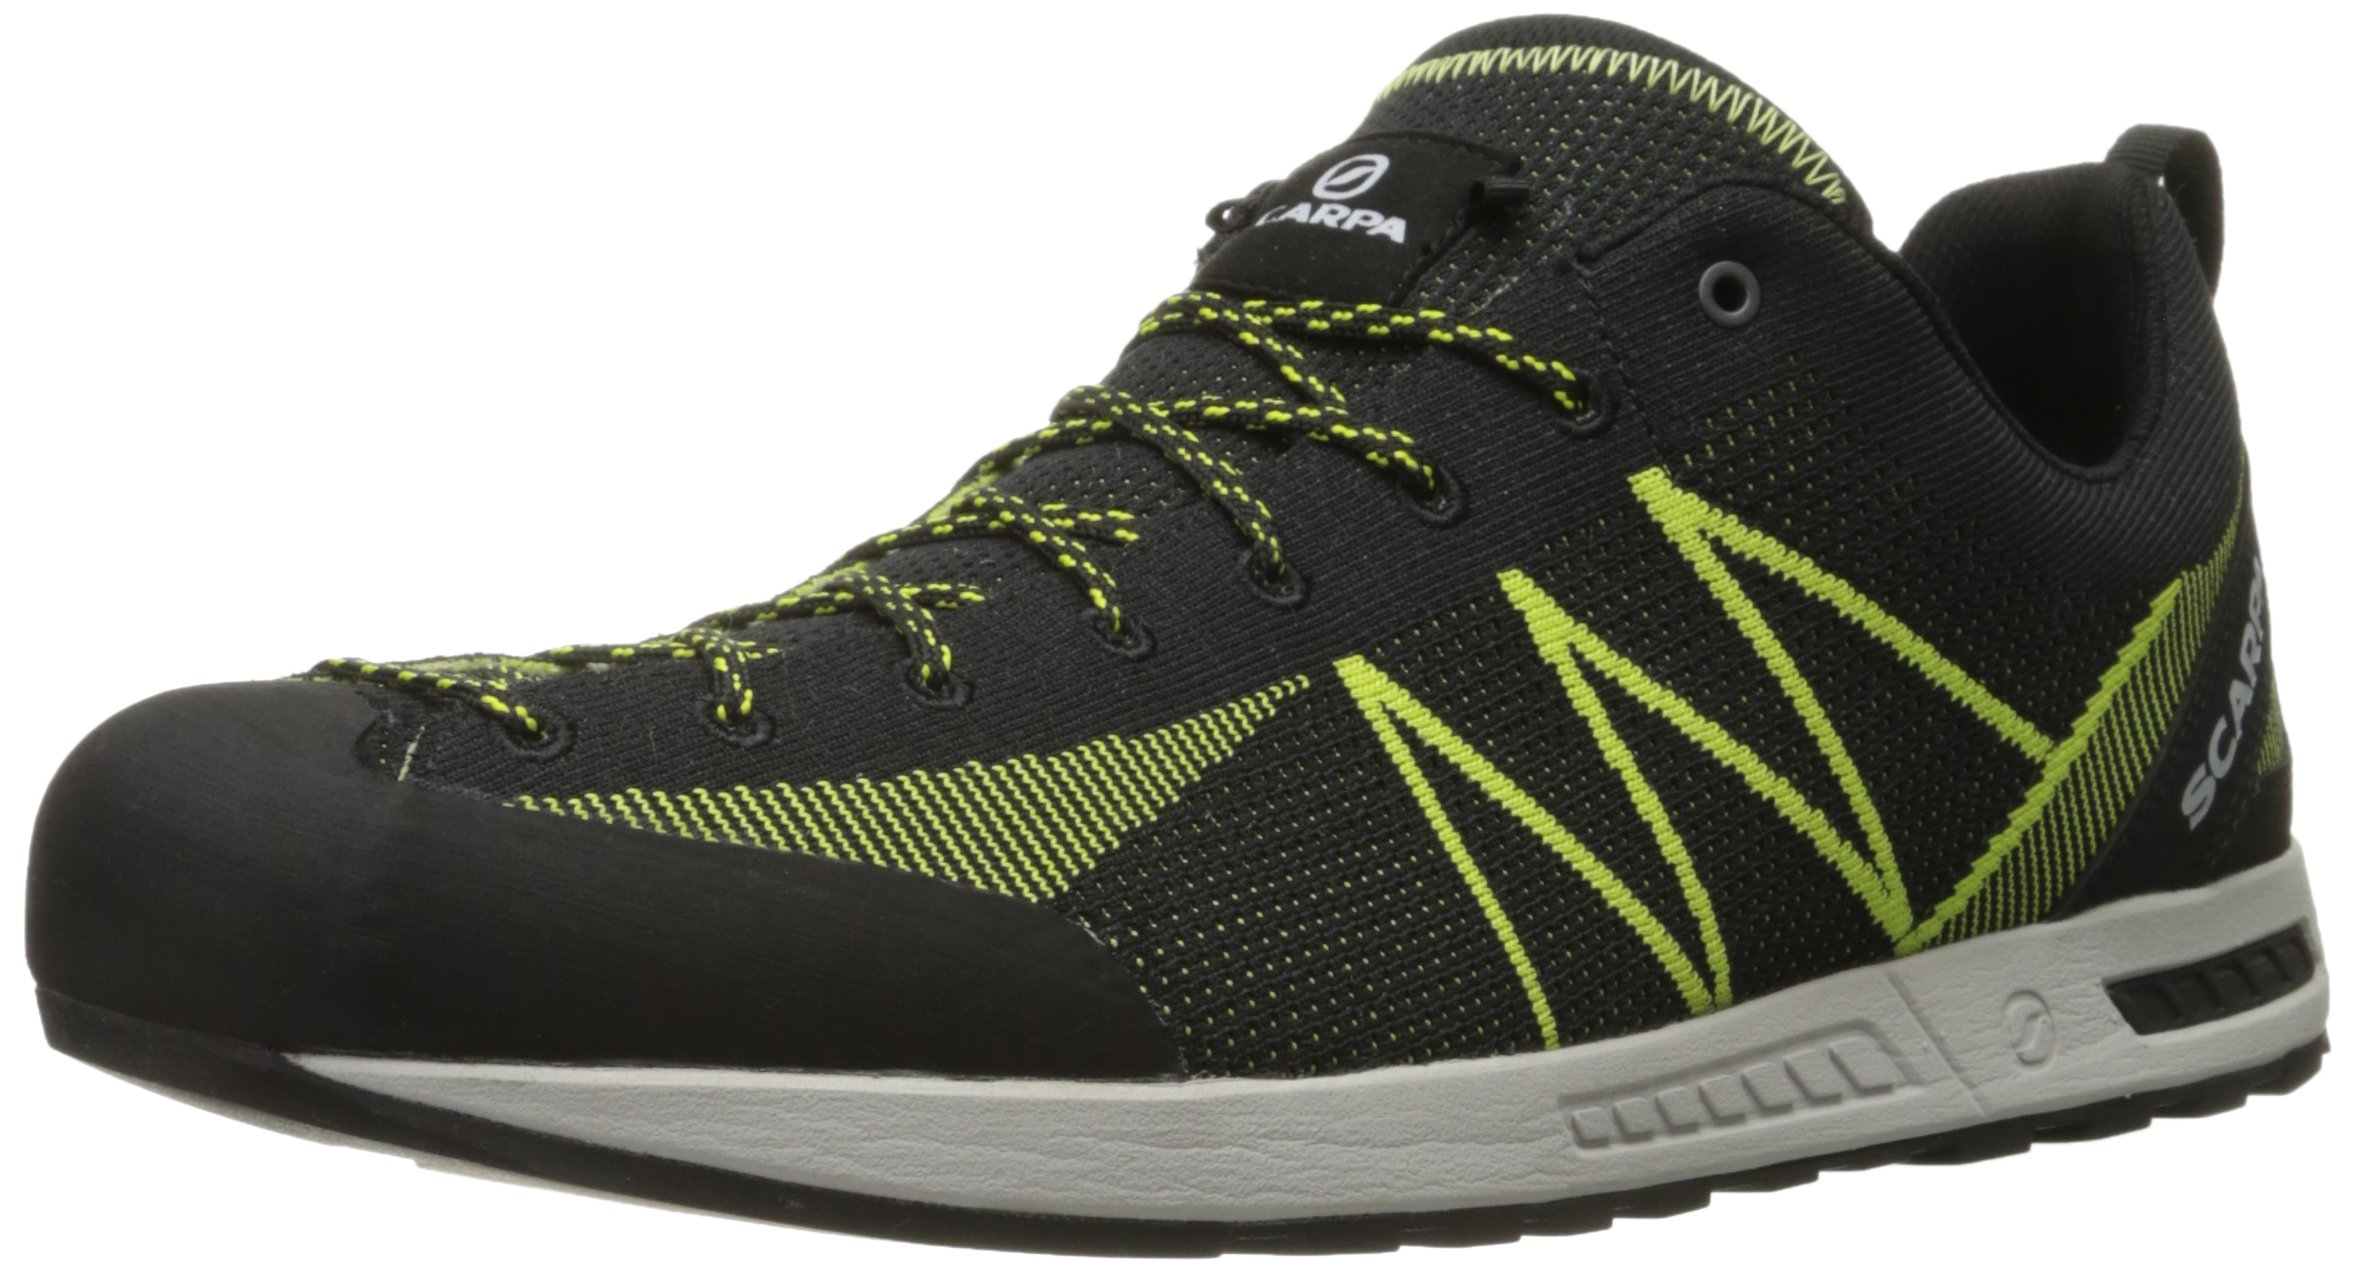 SCARPA Men's Iguana Approach Shoe, Black/Lime, 46 EU/12 M US